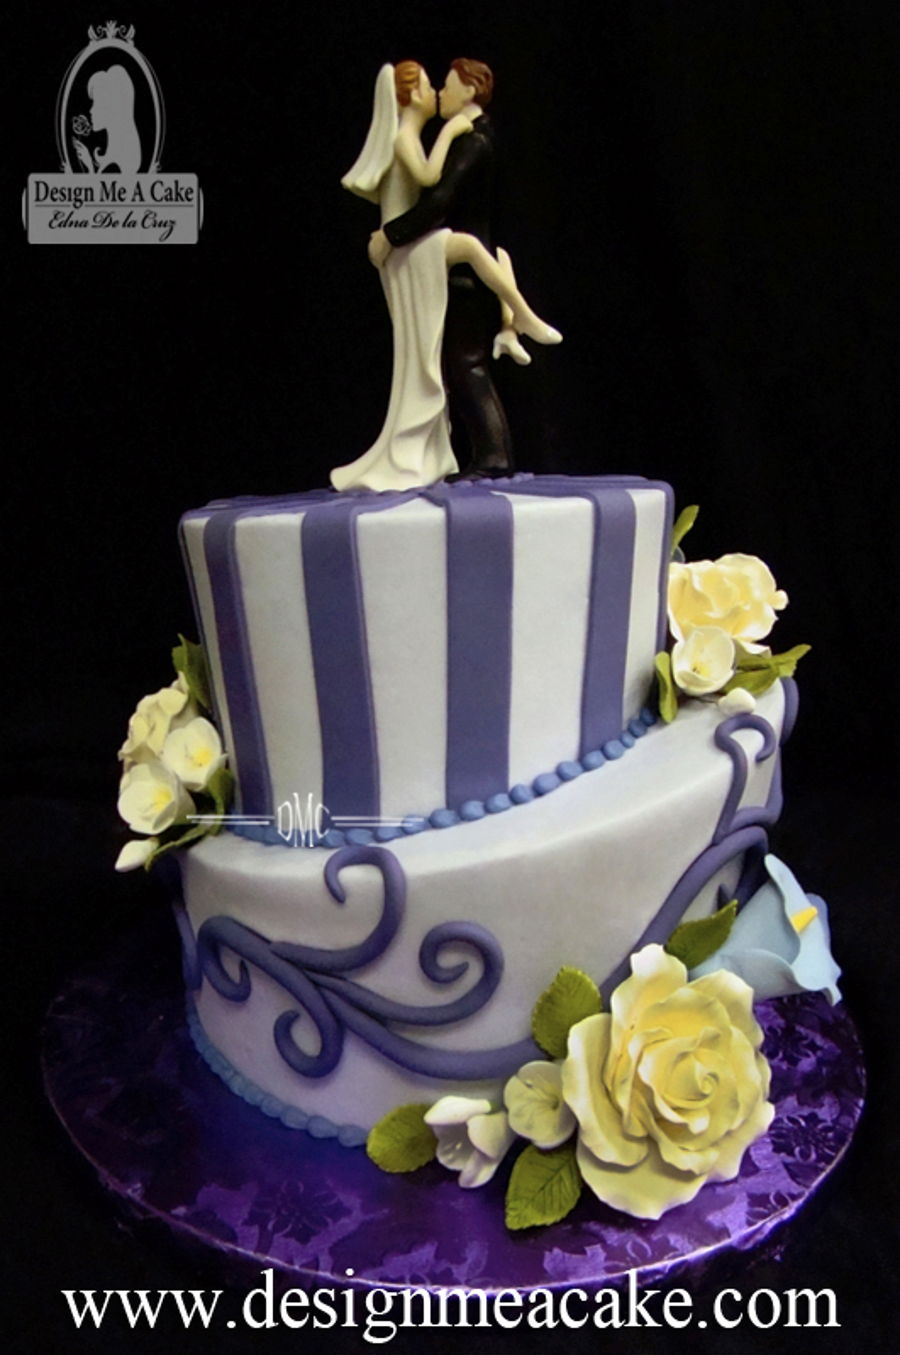 Shades Of Purple.  on Cake Central